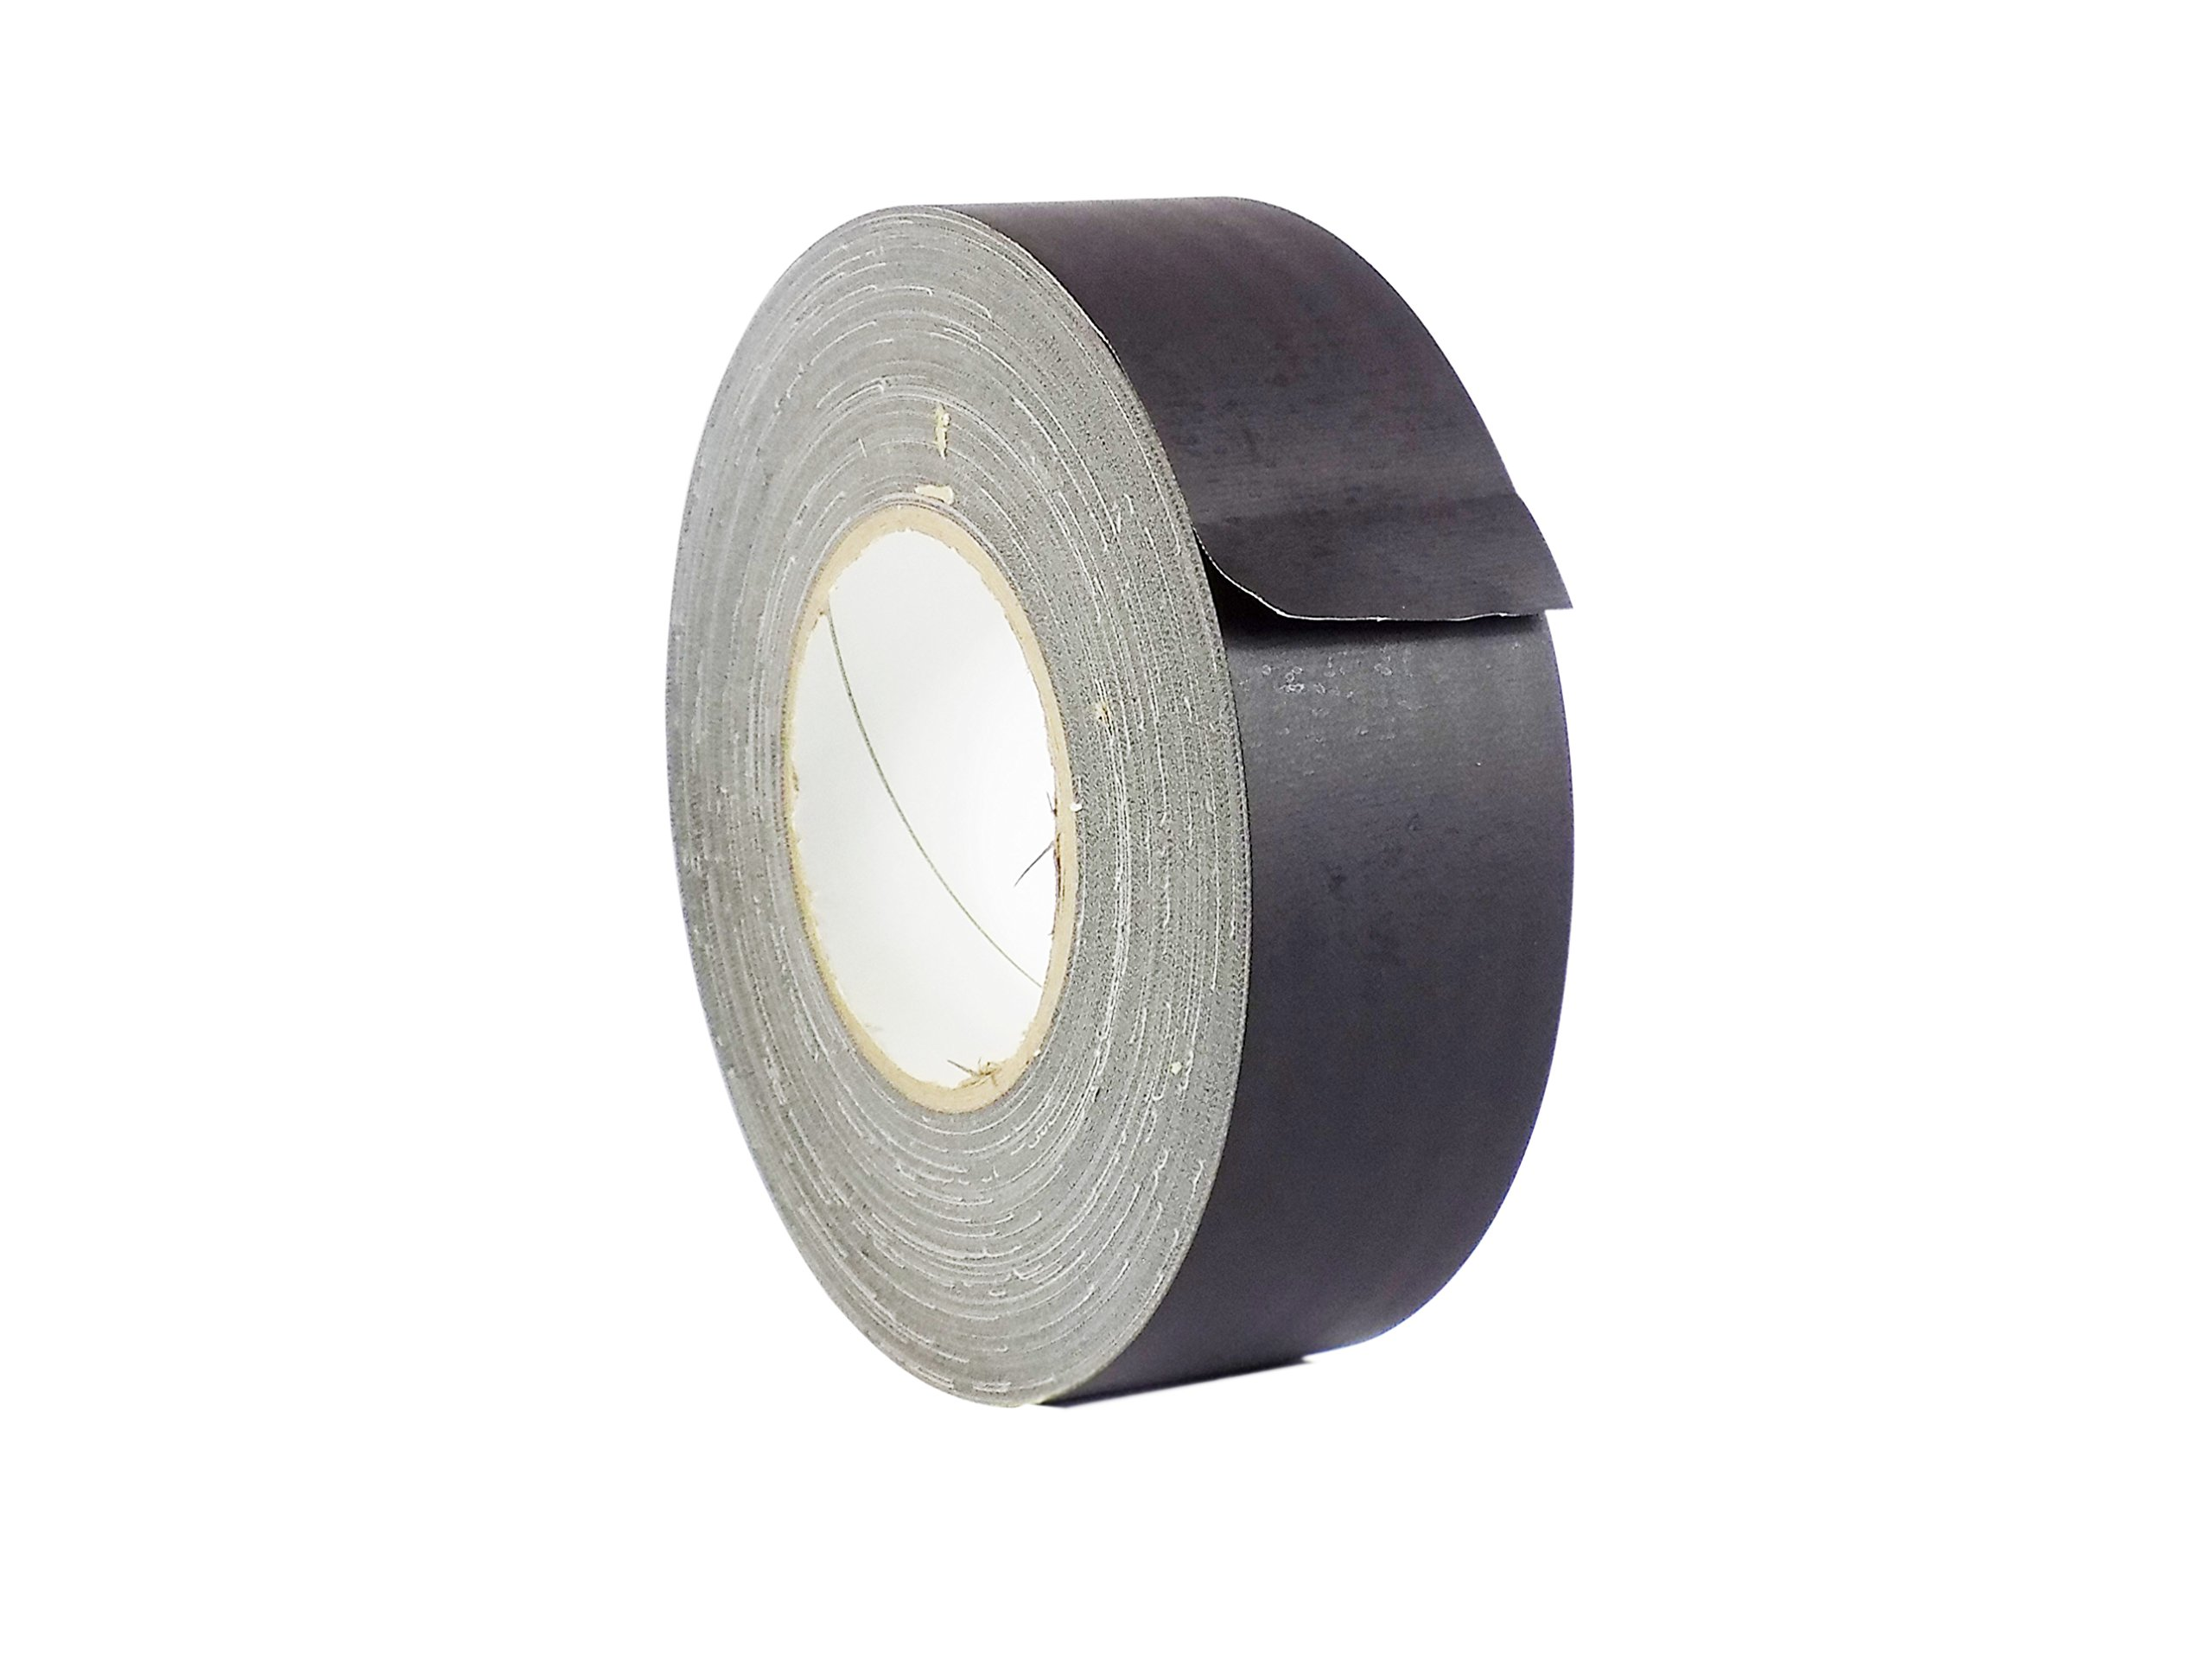 WOD CGT-80 Black Gaffer Tape Low Gloss Finish Film, Residue Free, Non Reflective Gaffer, Better than Duct Tape (Available in Multiple Sizes & Colors): 2 in. X 60 Yards (Pack of 1)